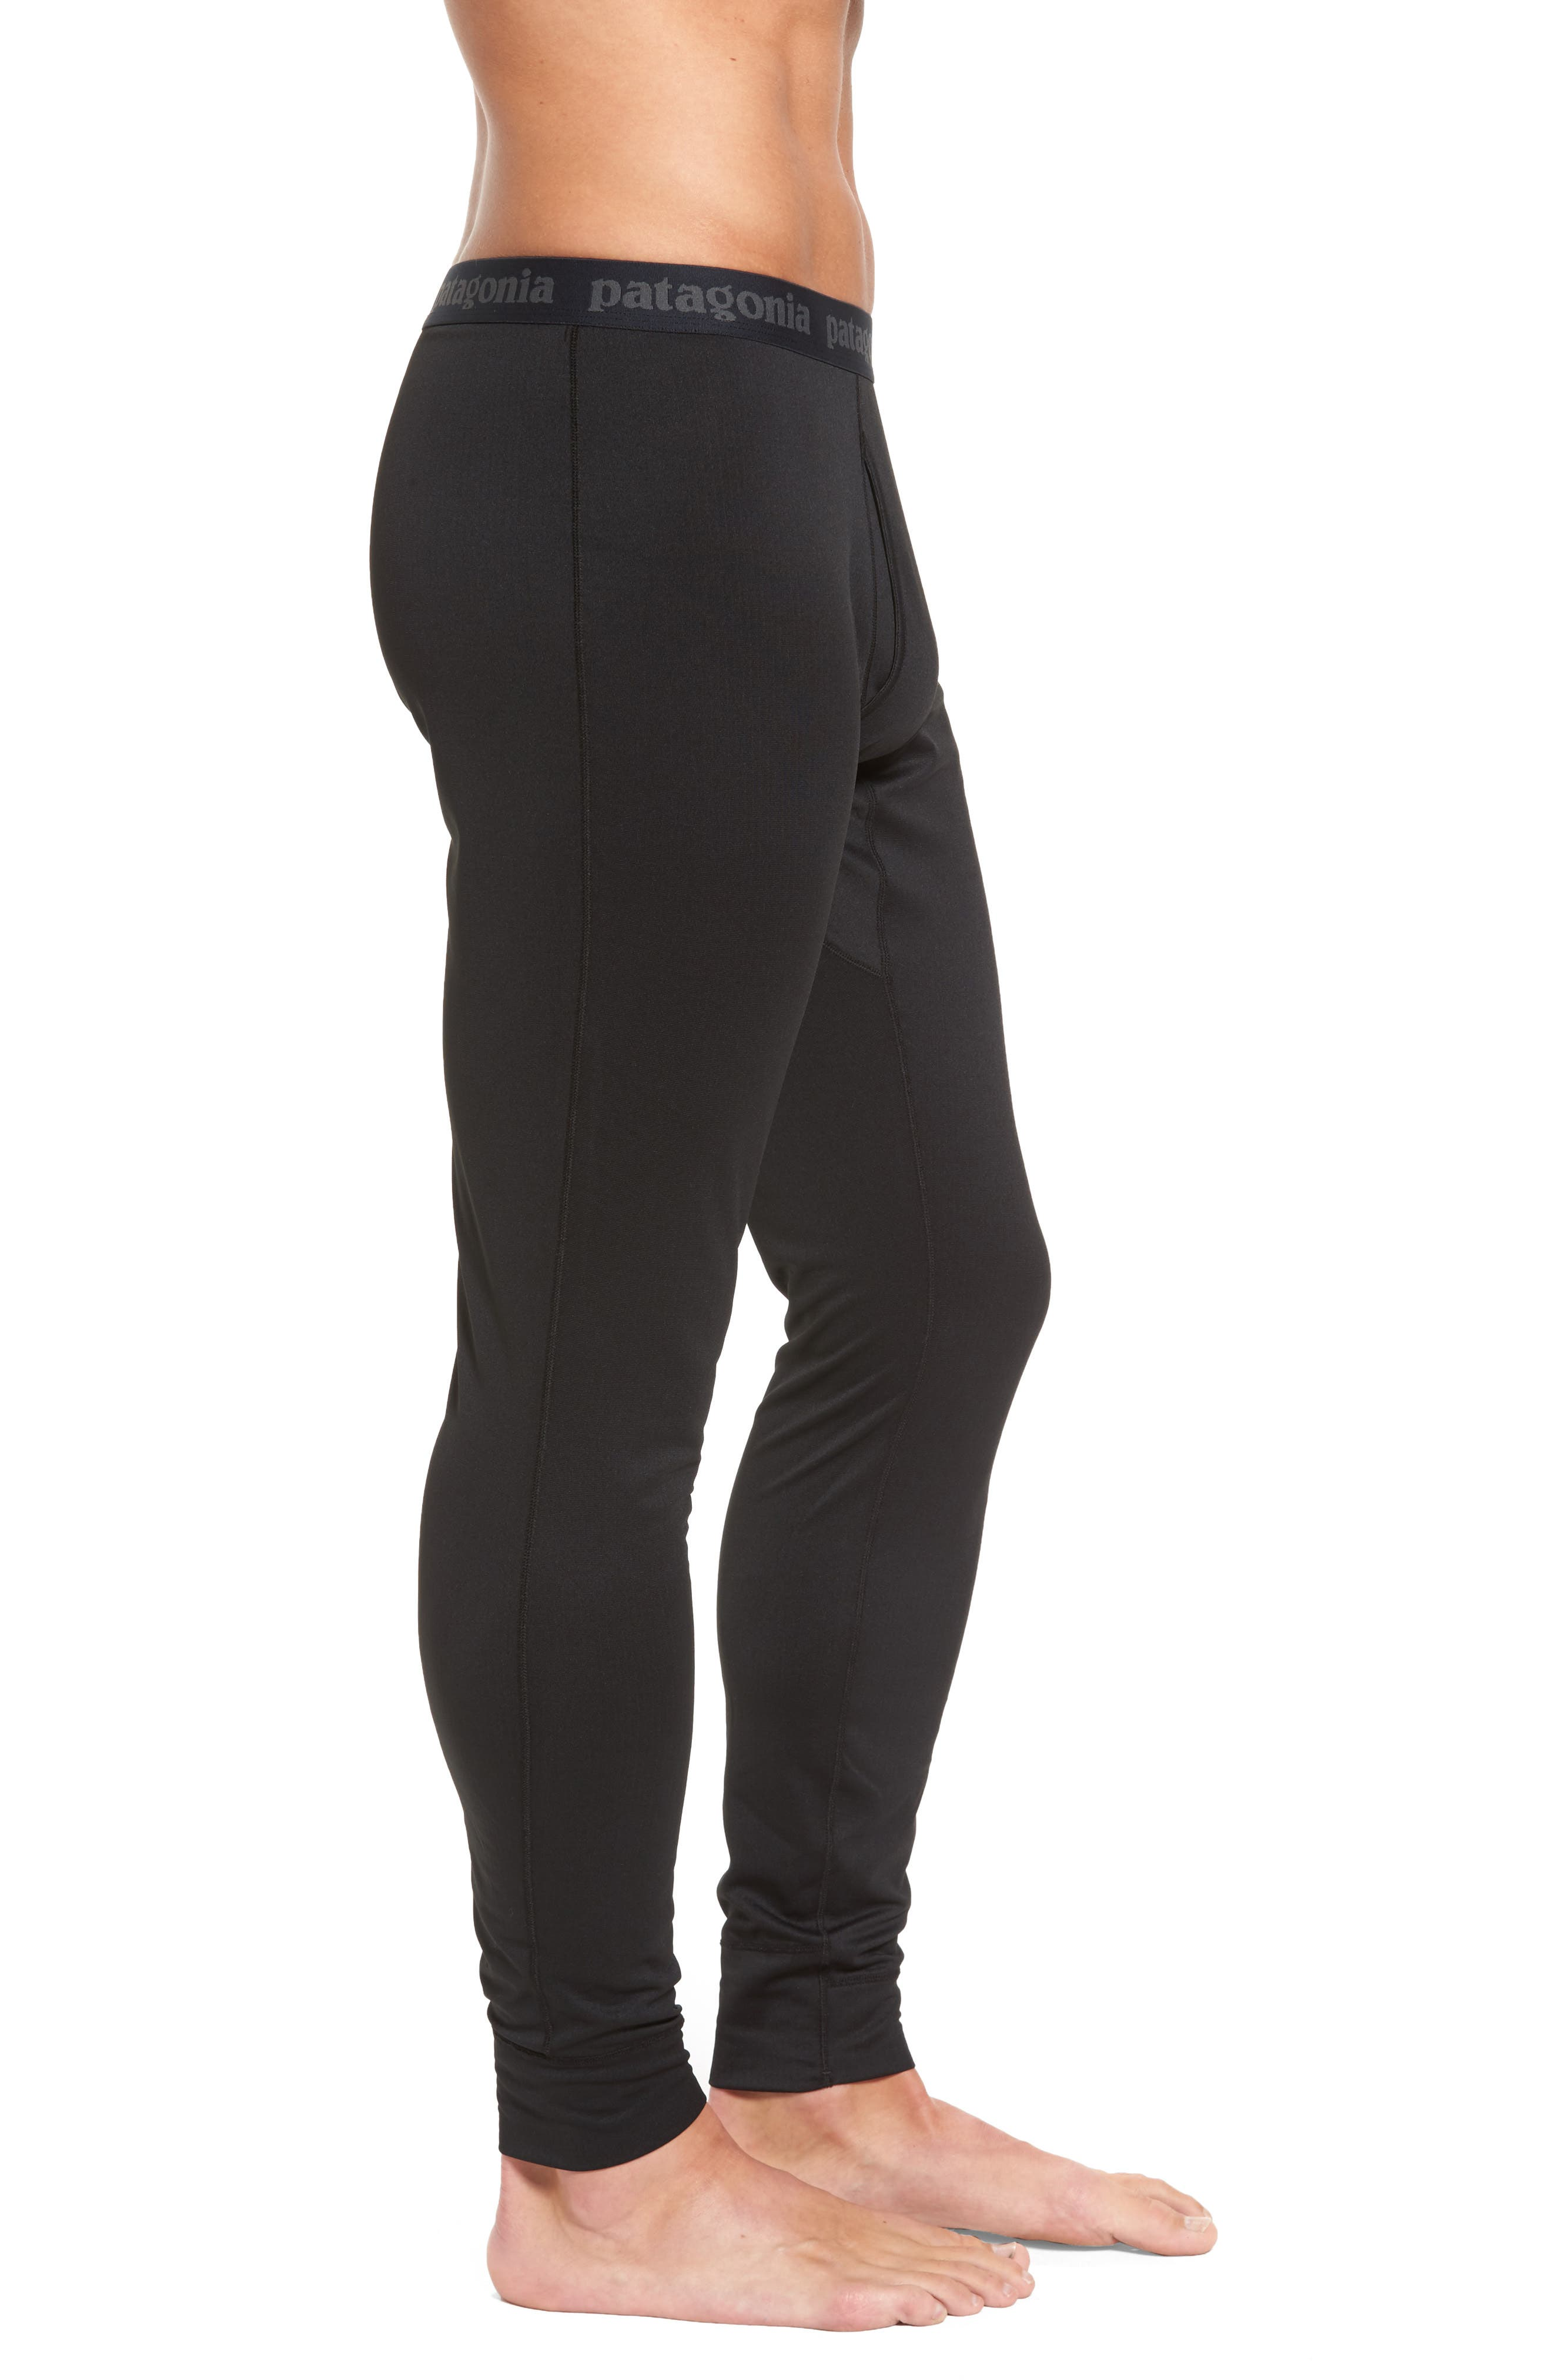 Capilene Midweight Base Layer Tights,                             Alternate thumbnail 3, color,                             001